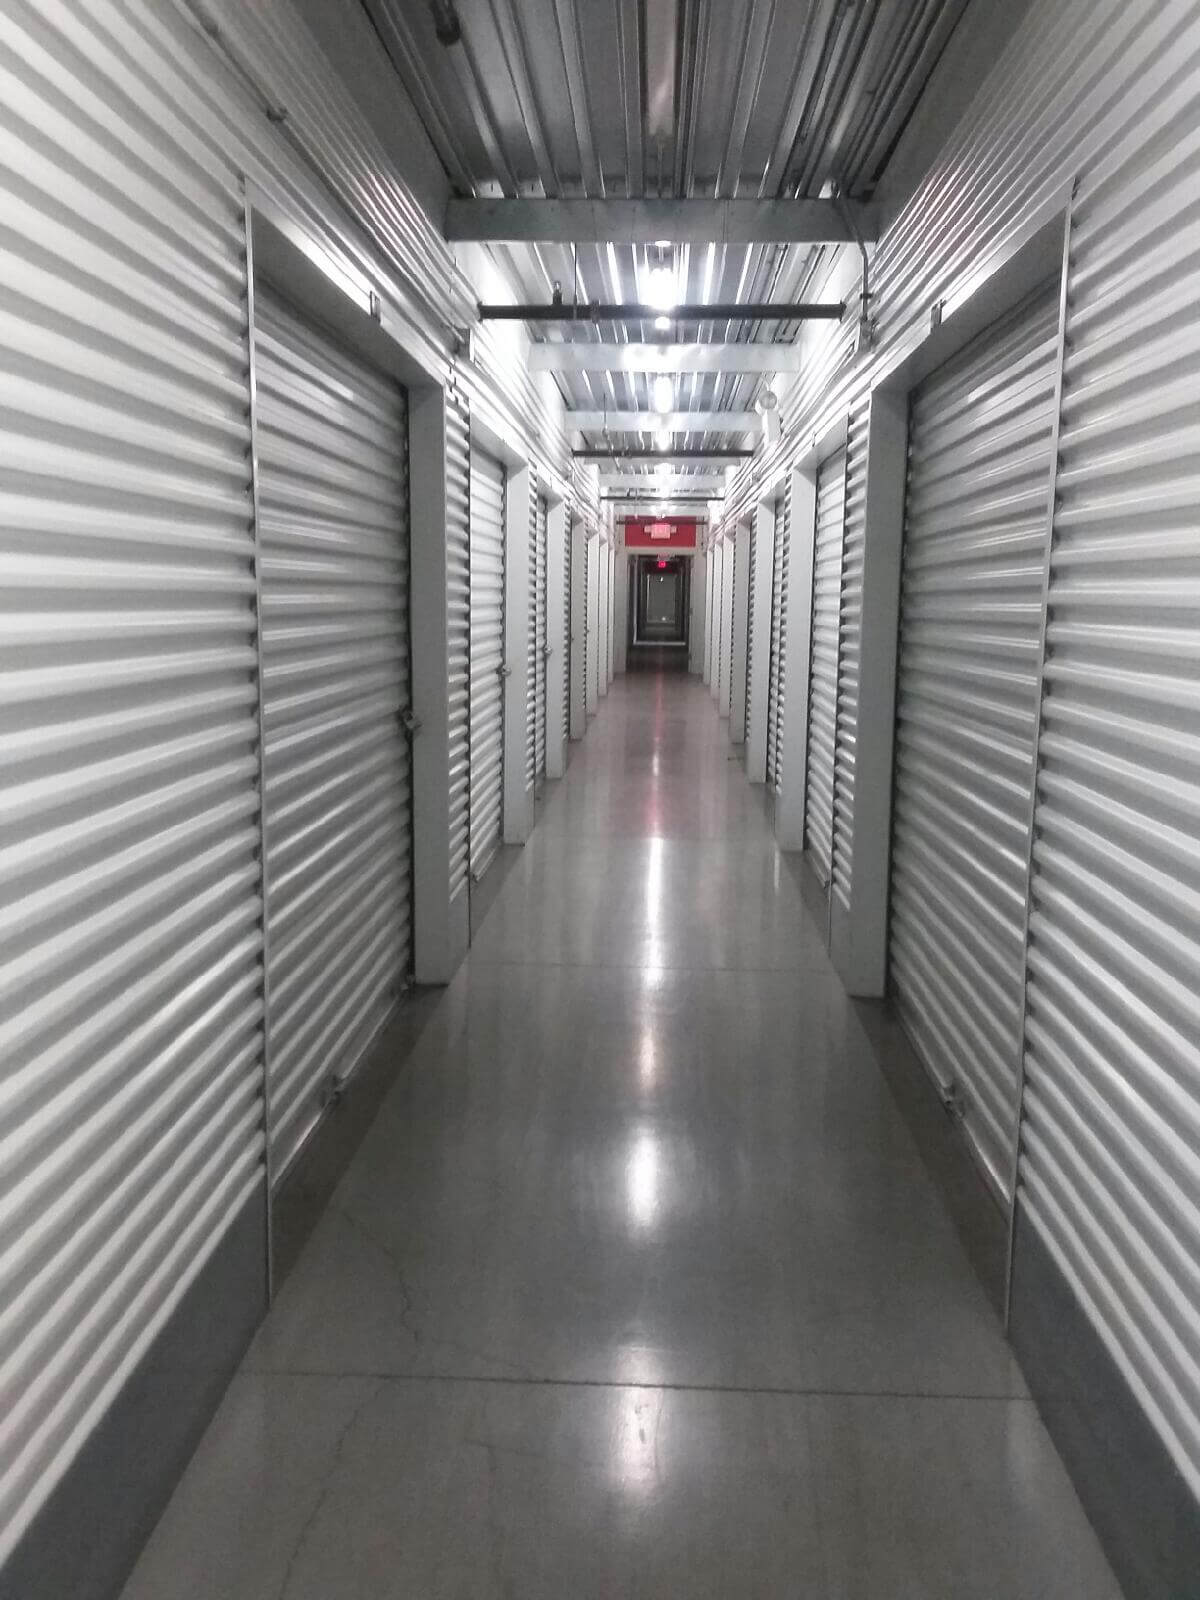 Inside row of storage units at Smart Stop self storage facility located at 590 East Silverado Ranch Blvd, Las Vegas Nevada